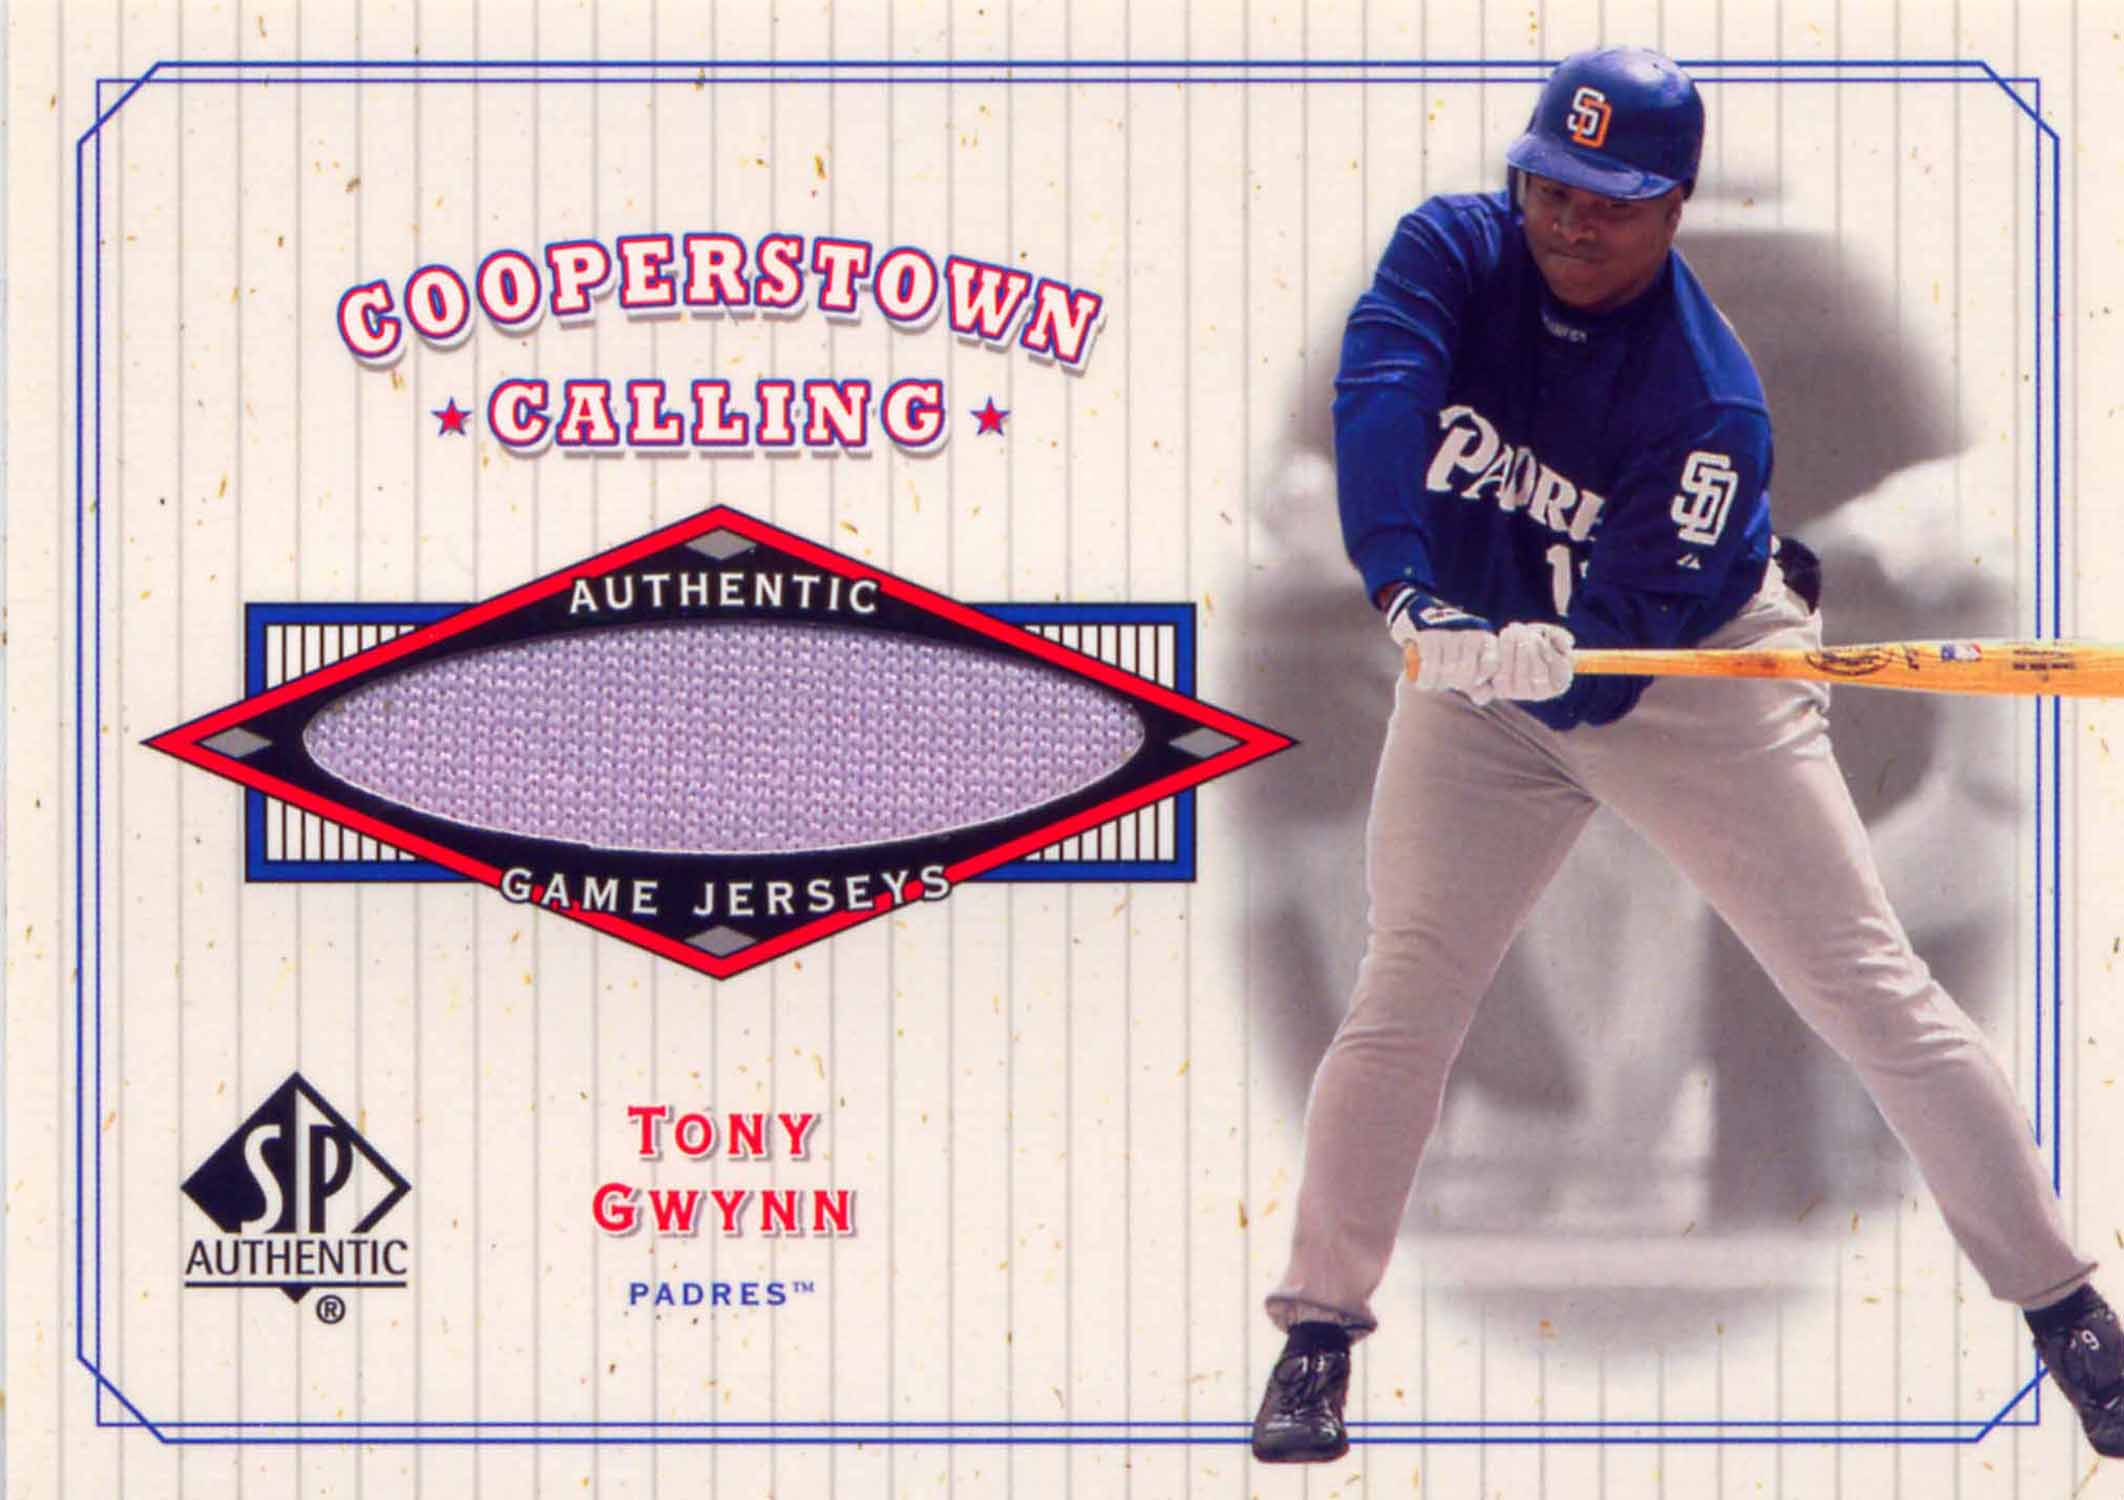 2001 SP Authentic Cooperstown Calling Game Jersey